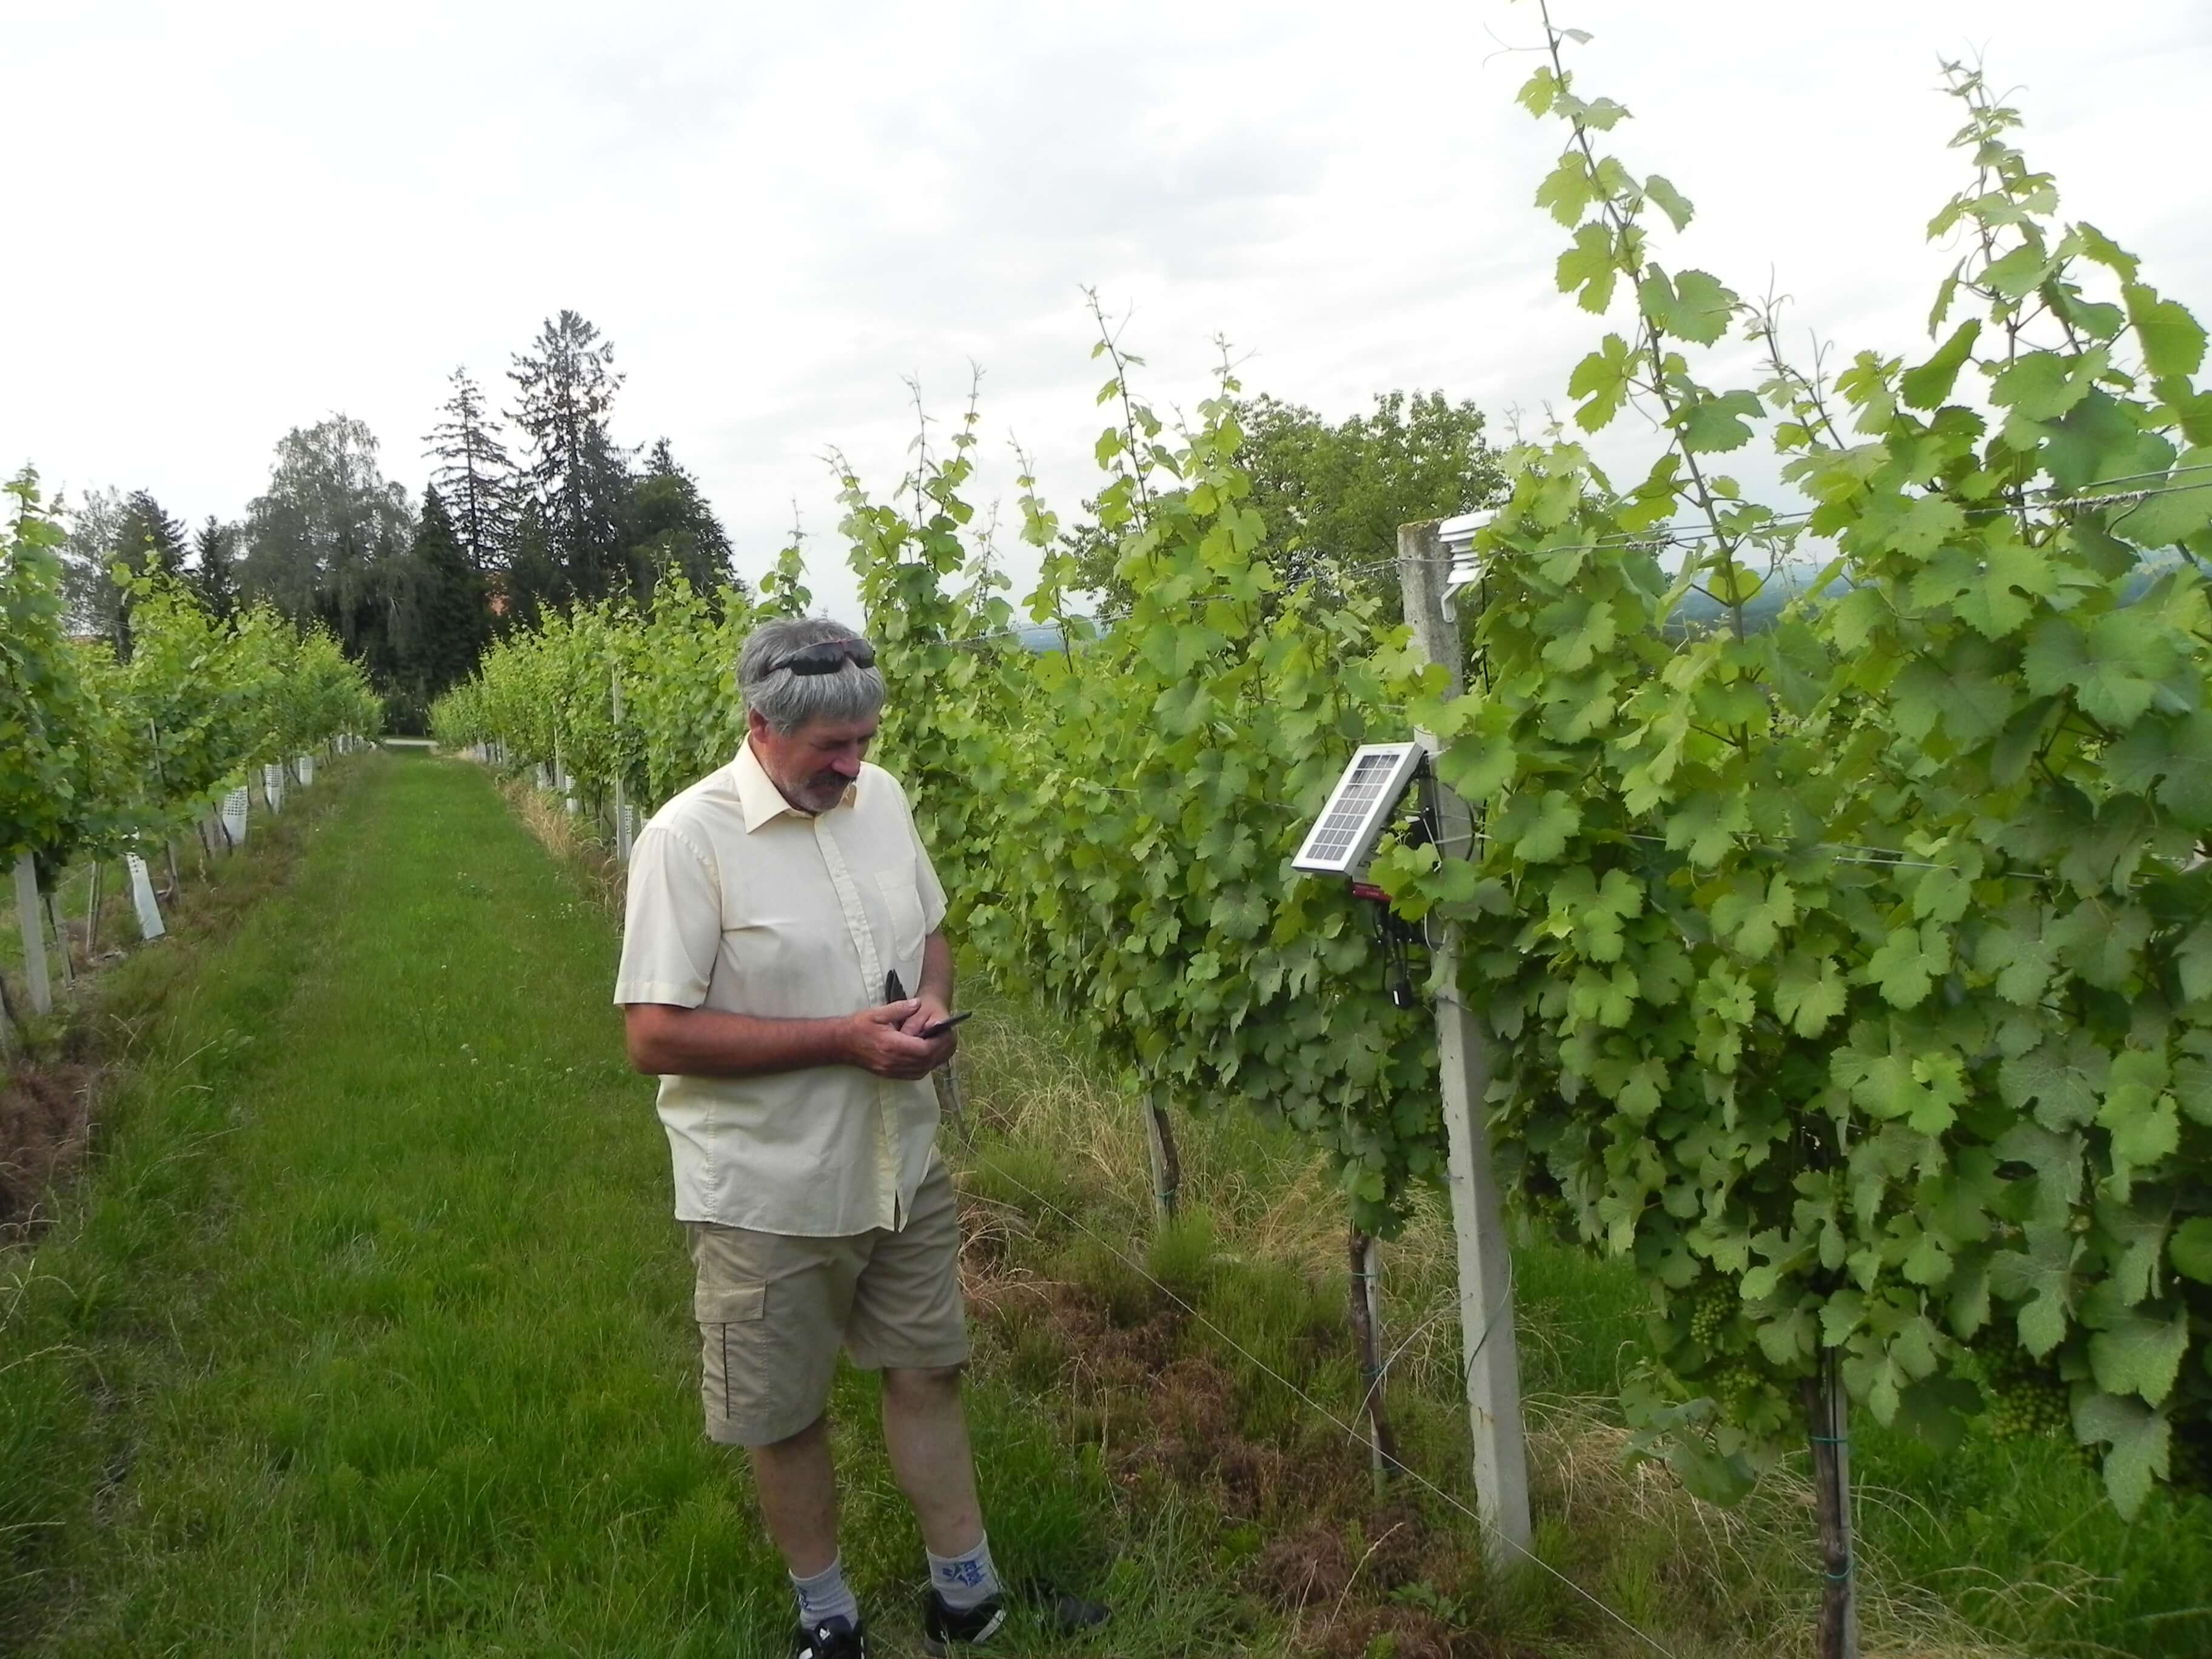 Why to implement IoT in the vineyard?